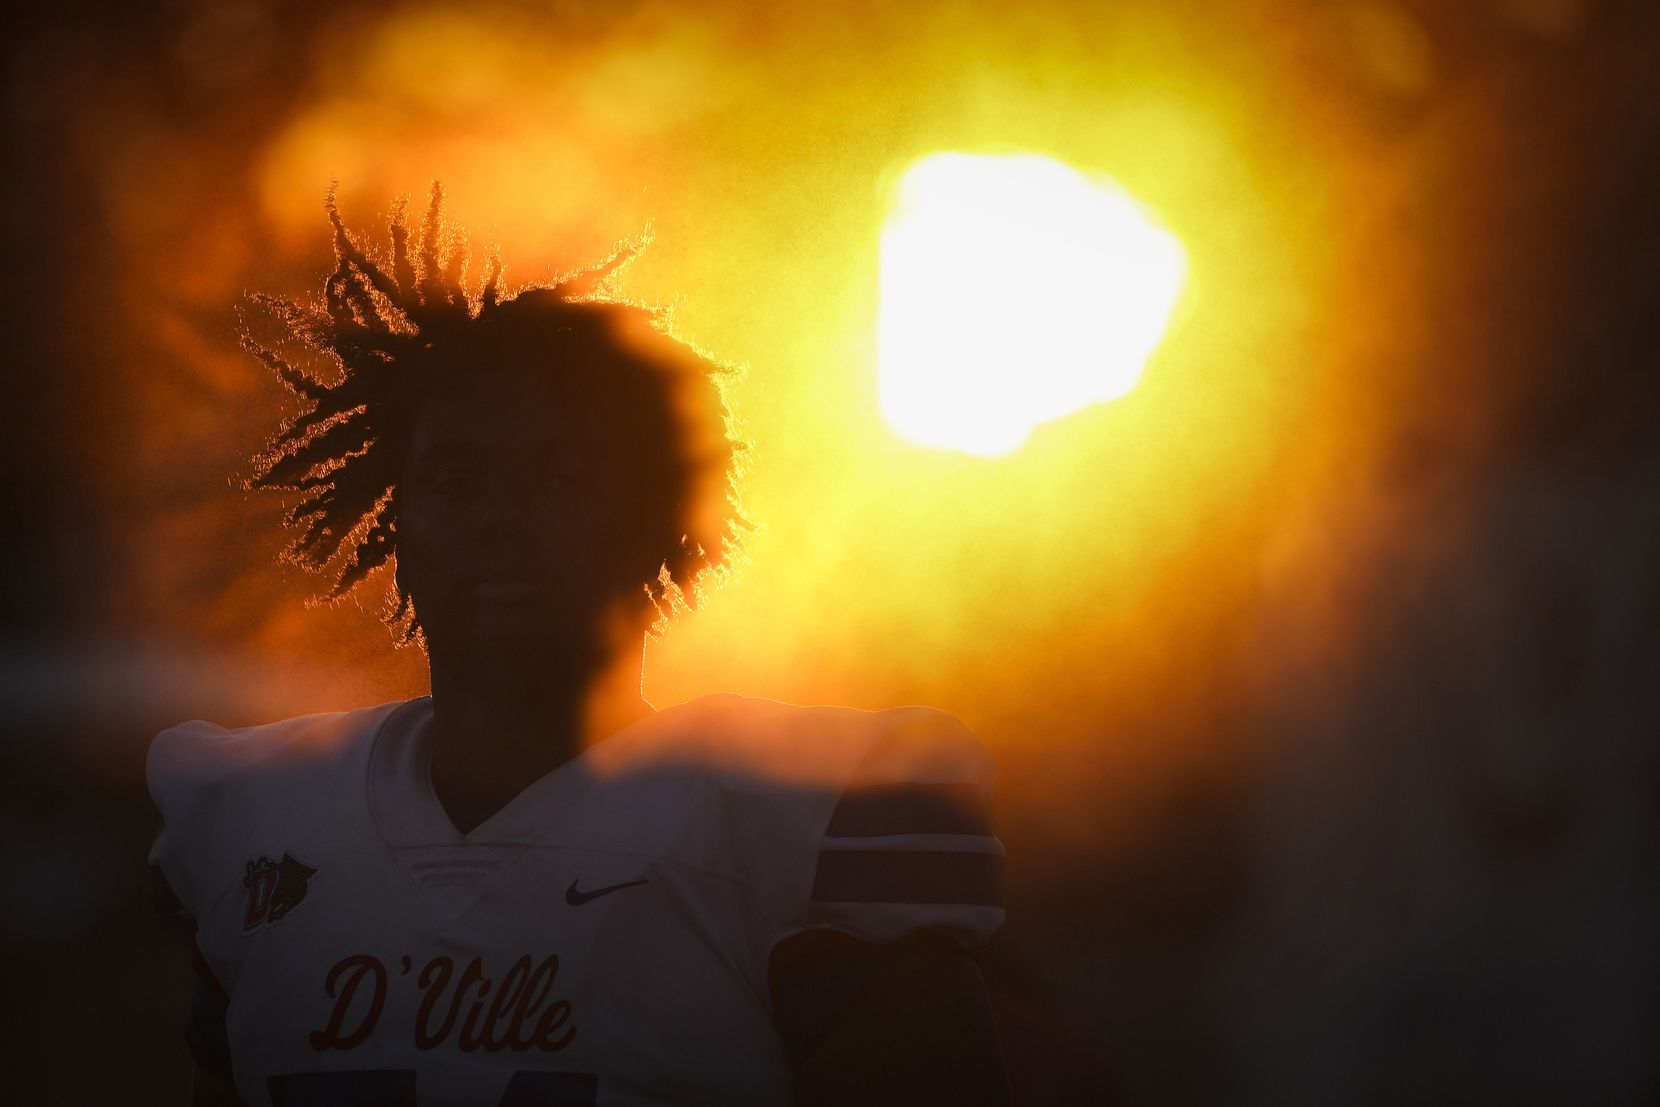 Duncanville offensive lineman Jerry Scales is shrouded in the mist from a cooling station on the sidelines as the sun sets during the first half of a high school football game against Mater Dei on Friday, Aug. 27, 2021, in Duncanville. (Smiley N. Pool/The Dallas Morning News)